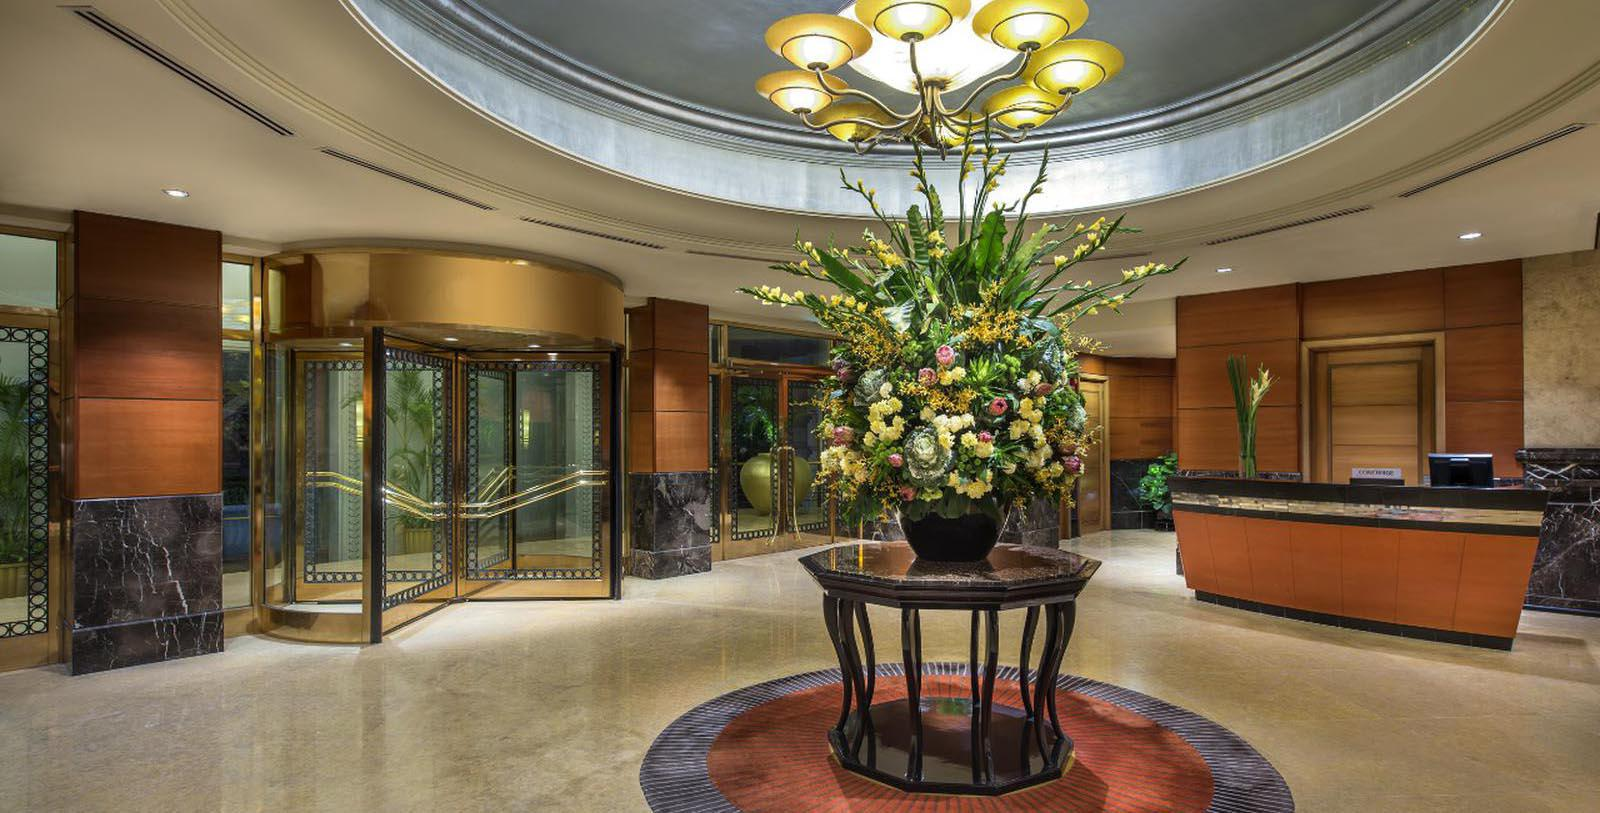 Image of Garden Court is crowned by a glass dome atrium and shimmering Austrian crystal chandeliers.